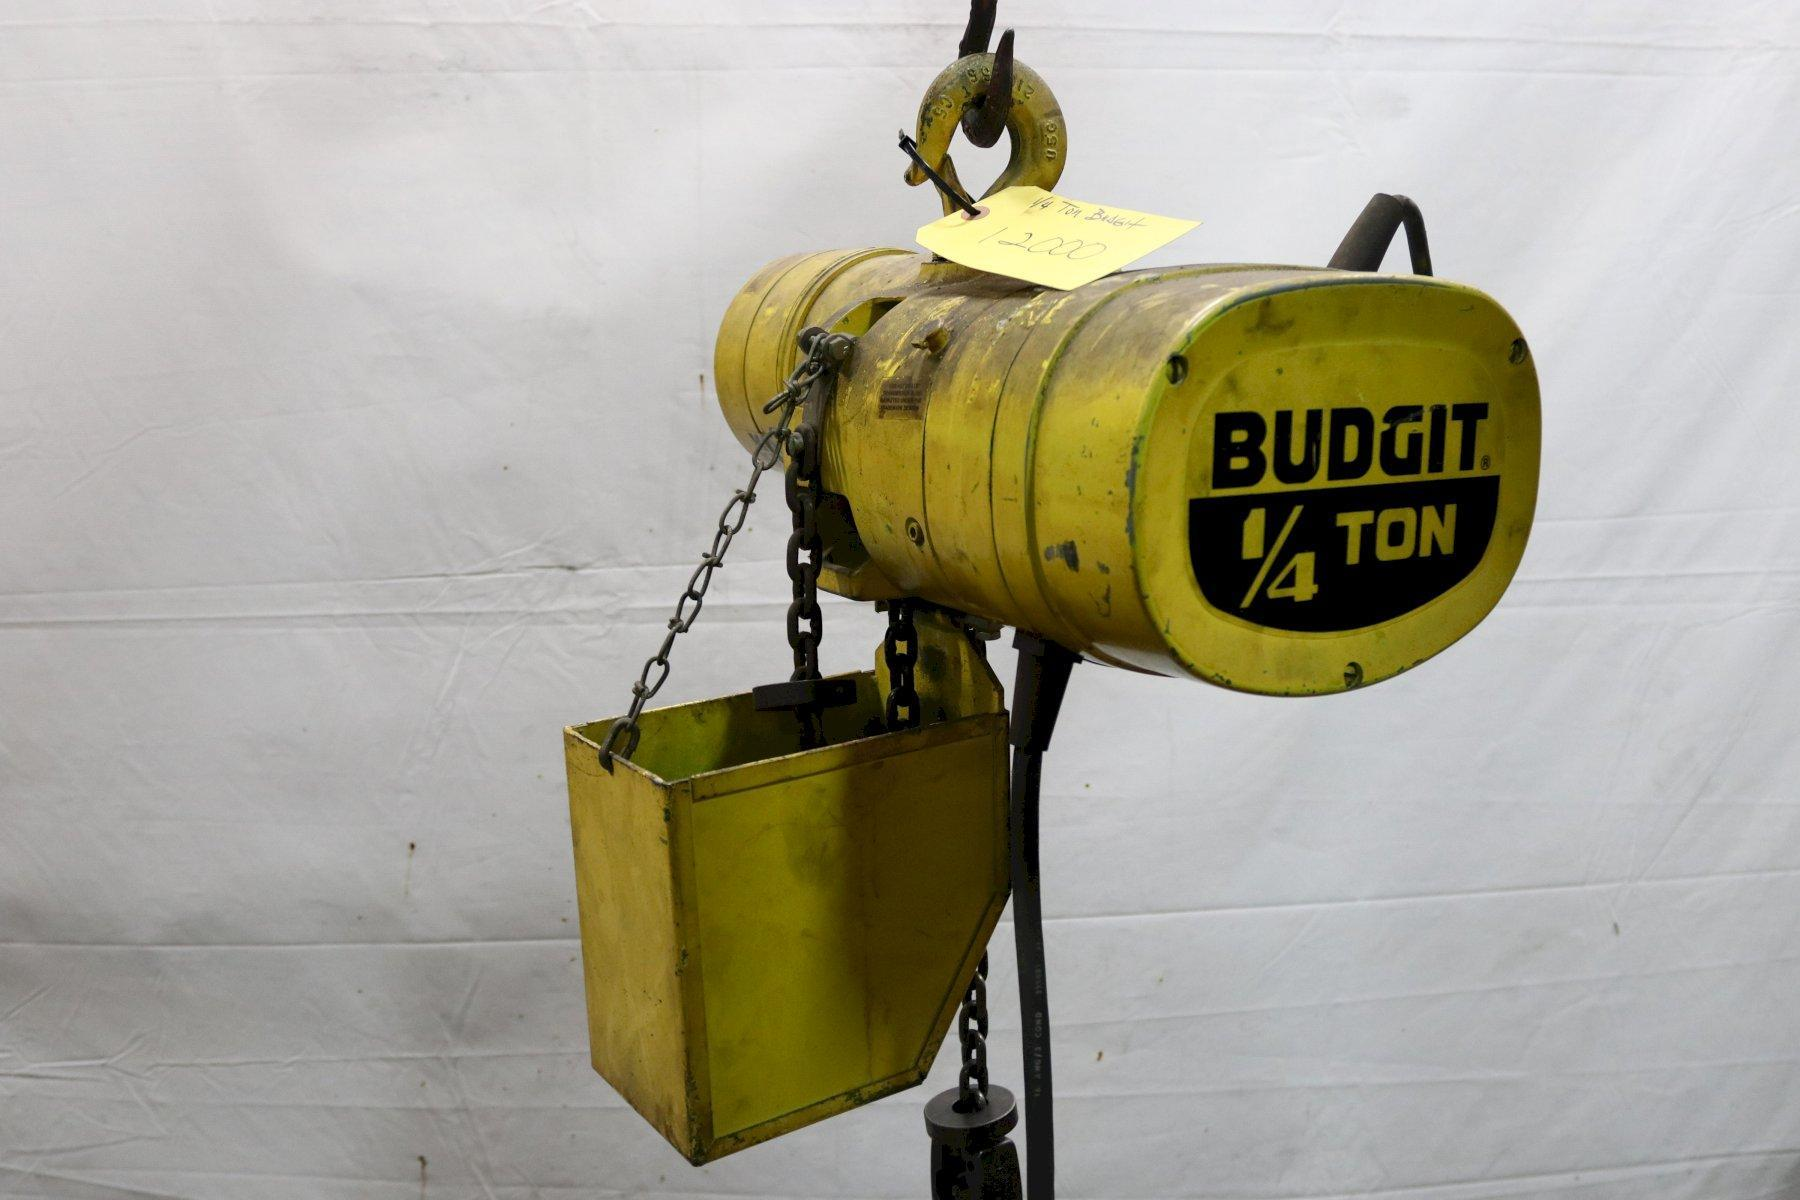 1/4 TON BUDGIT ELECTRIC POWERED CHAIN HOIST: STOCK #12000